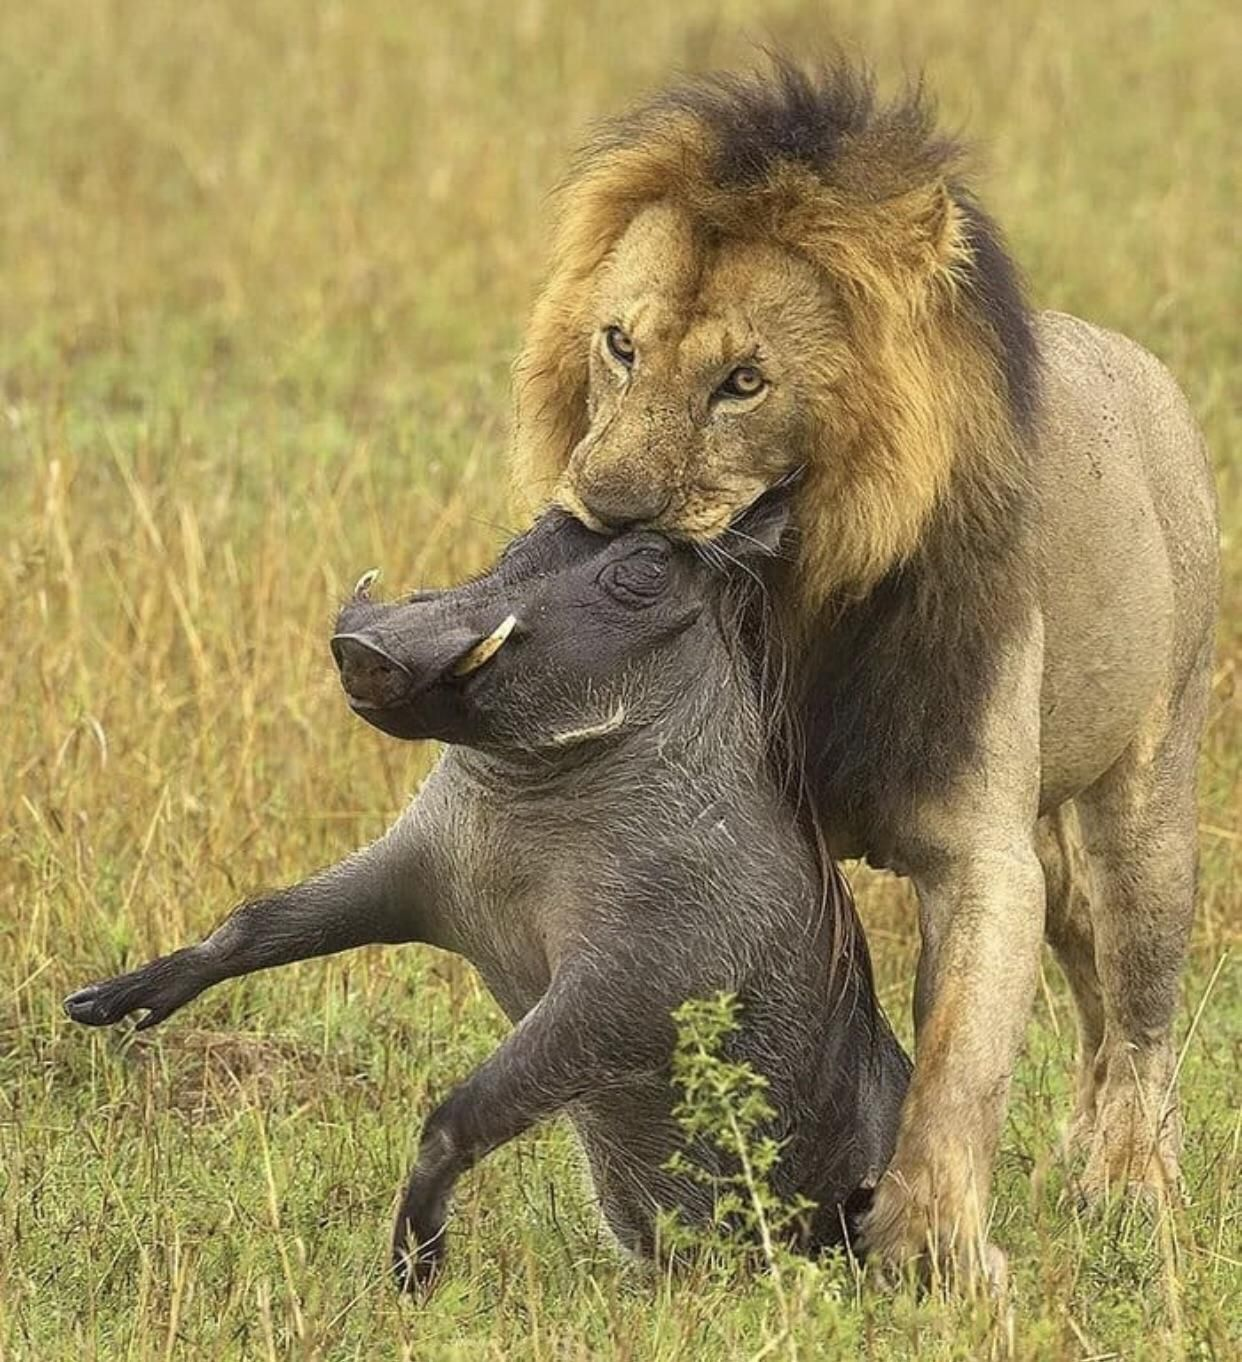 Unfortunately Lion King has been cancelled due to some conflict with the actors